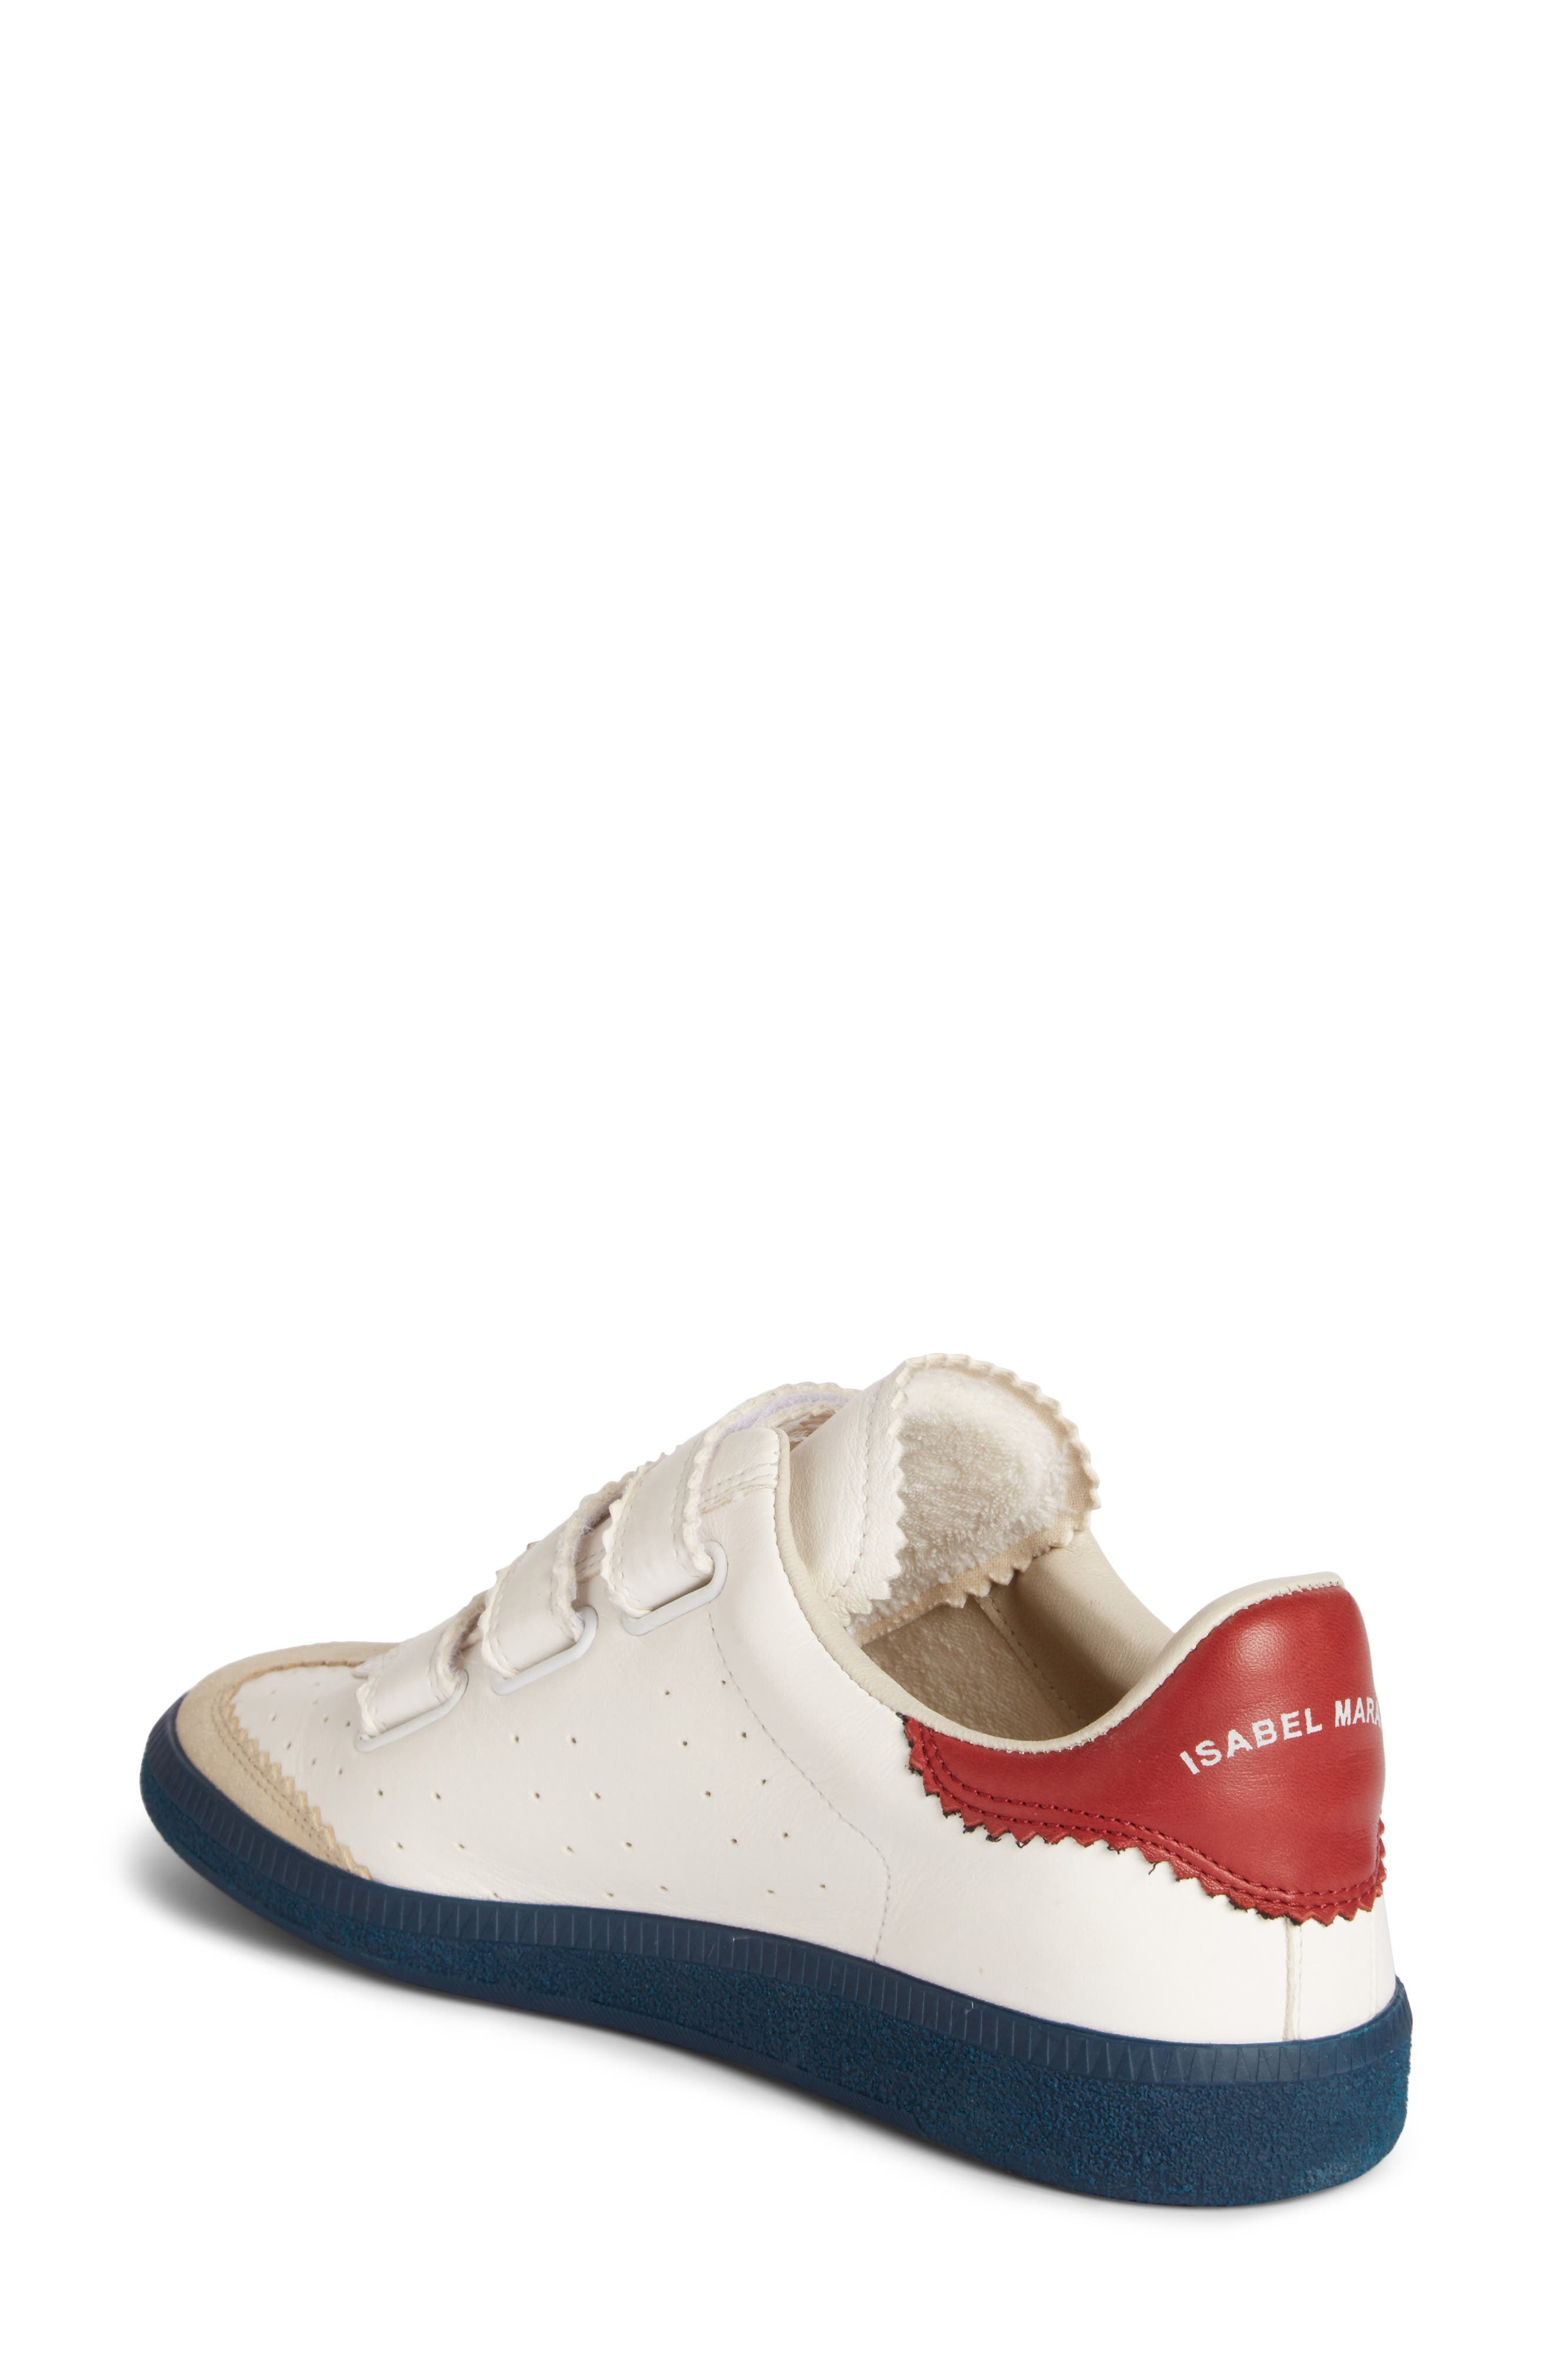 prada shoes 40×53mm dimensions of queen